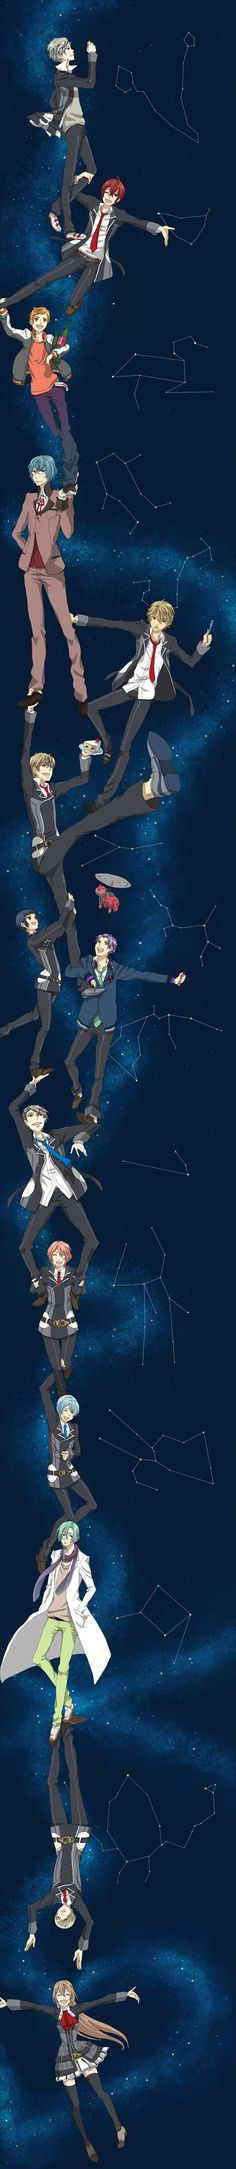 Starry Sky loved the first game, to bad the other 3 weren't translated